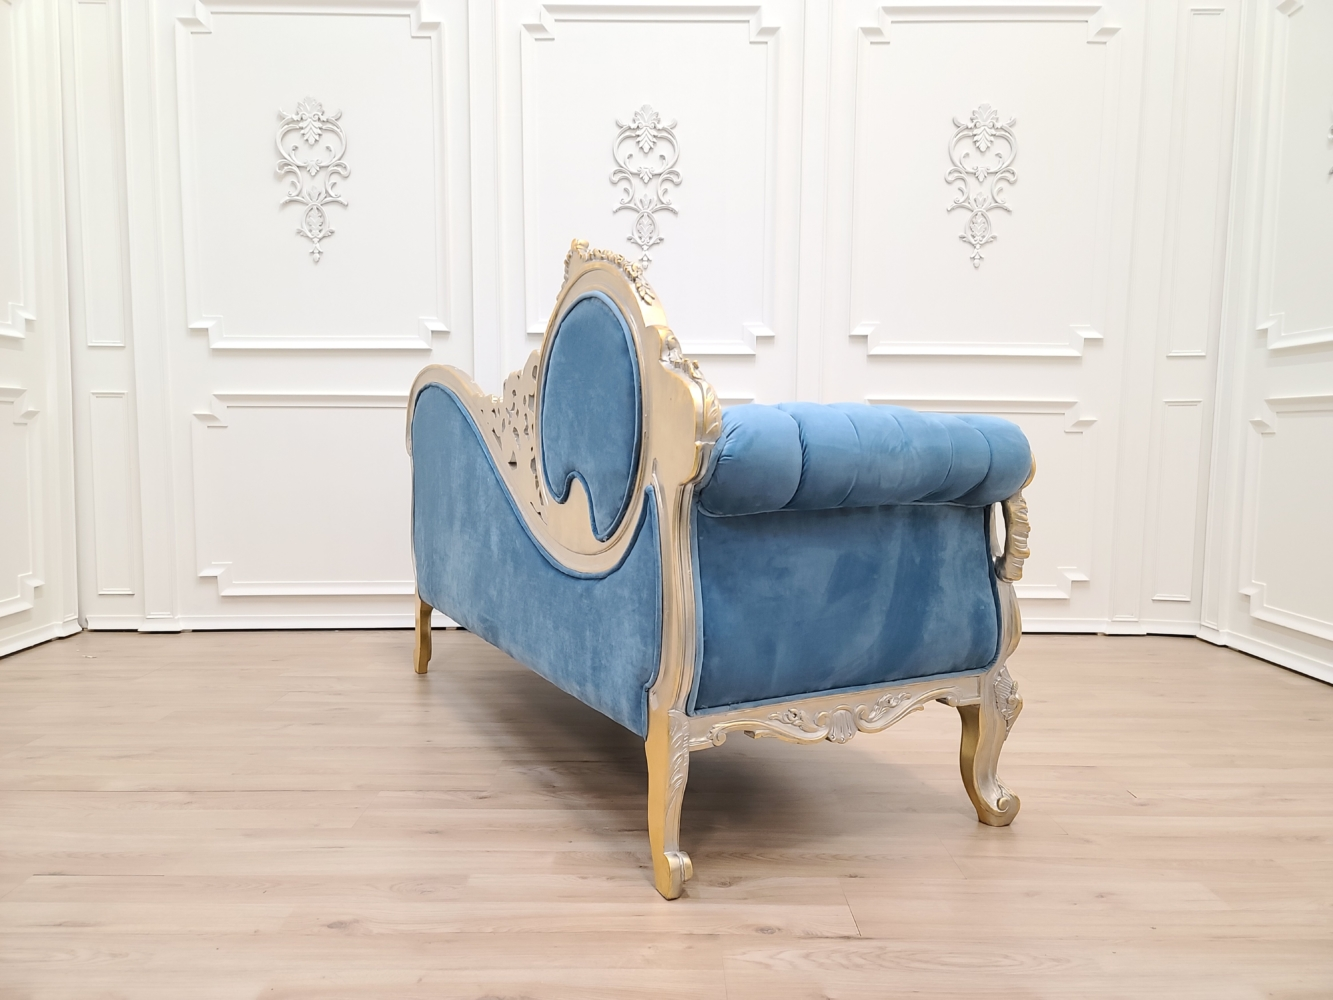 Victorian Sofa/Powdered Gold Leaf Hand Carved Wood Frame /Tufted Blue Velvet/Chaise Lounge